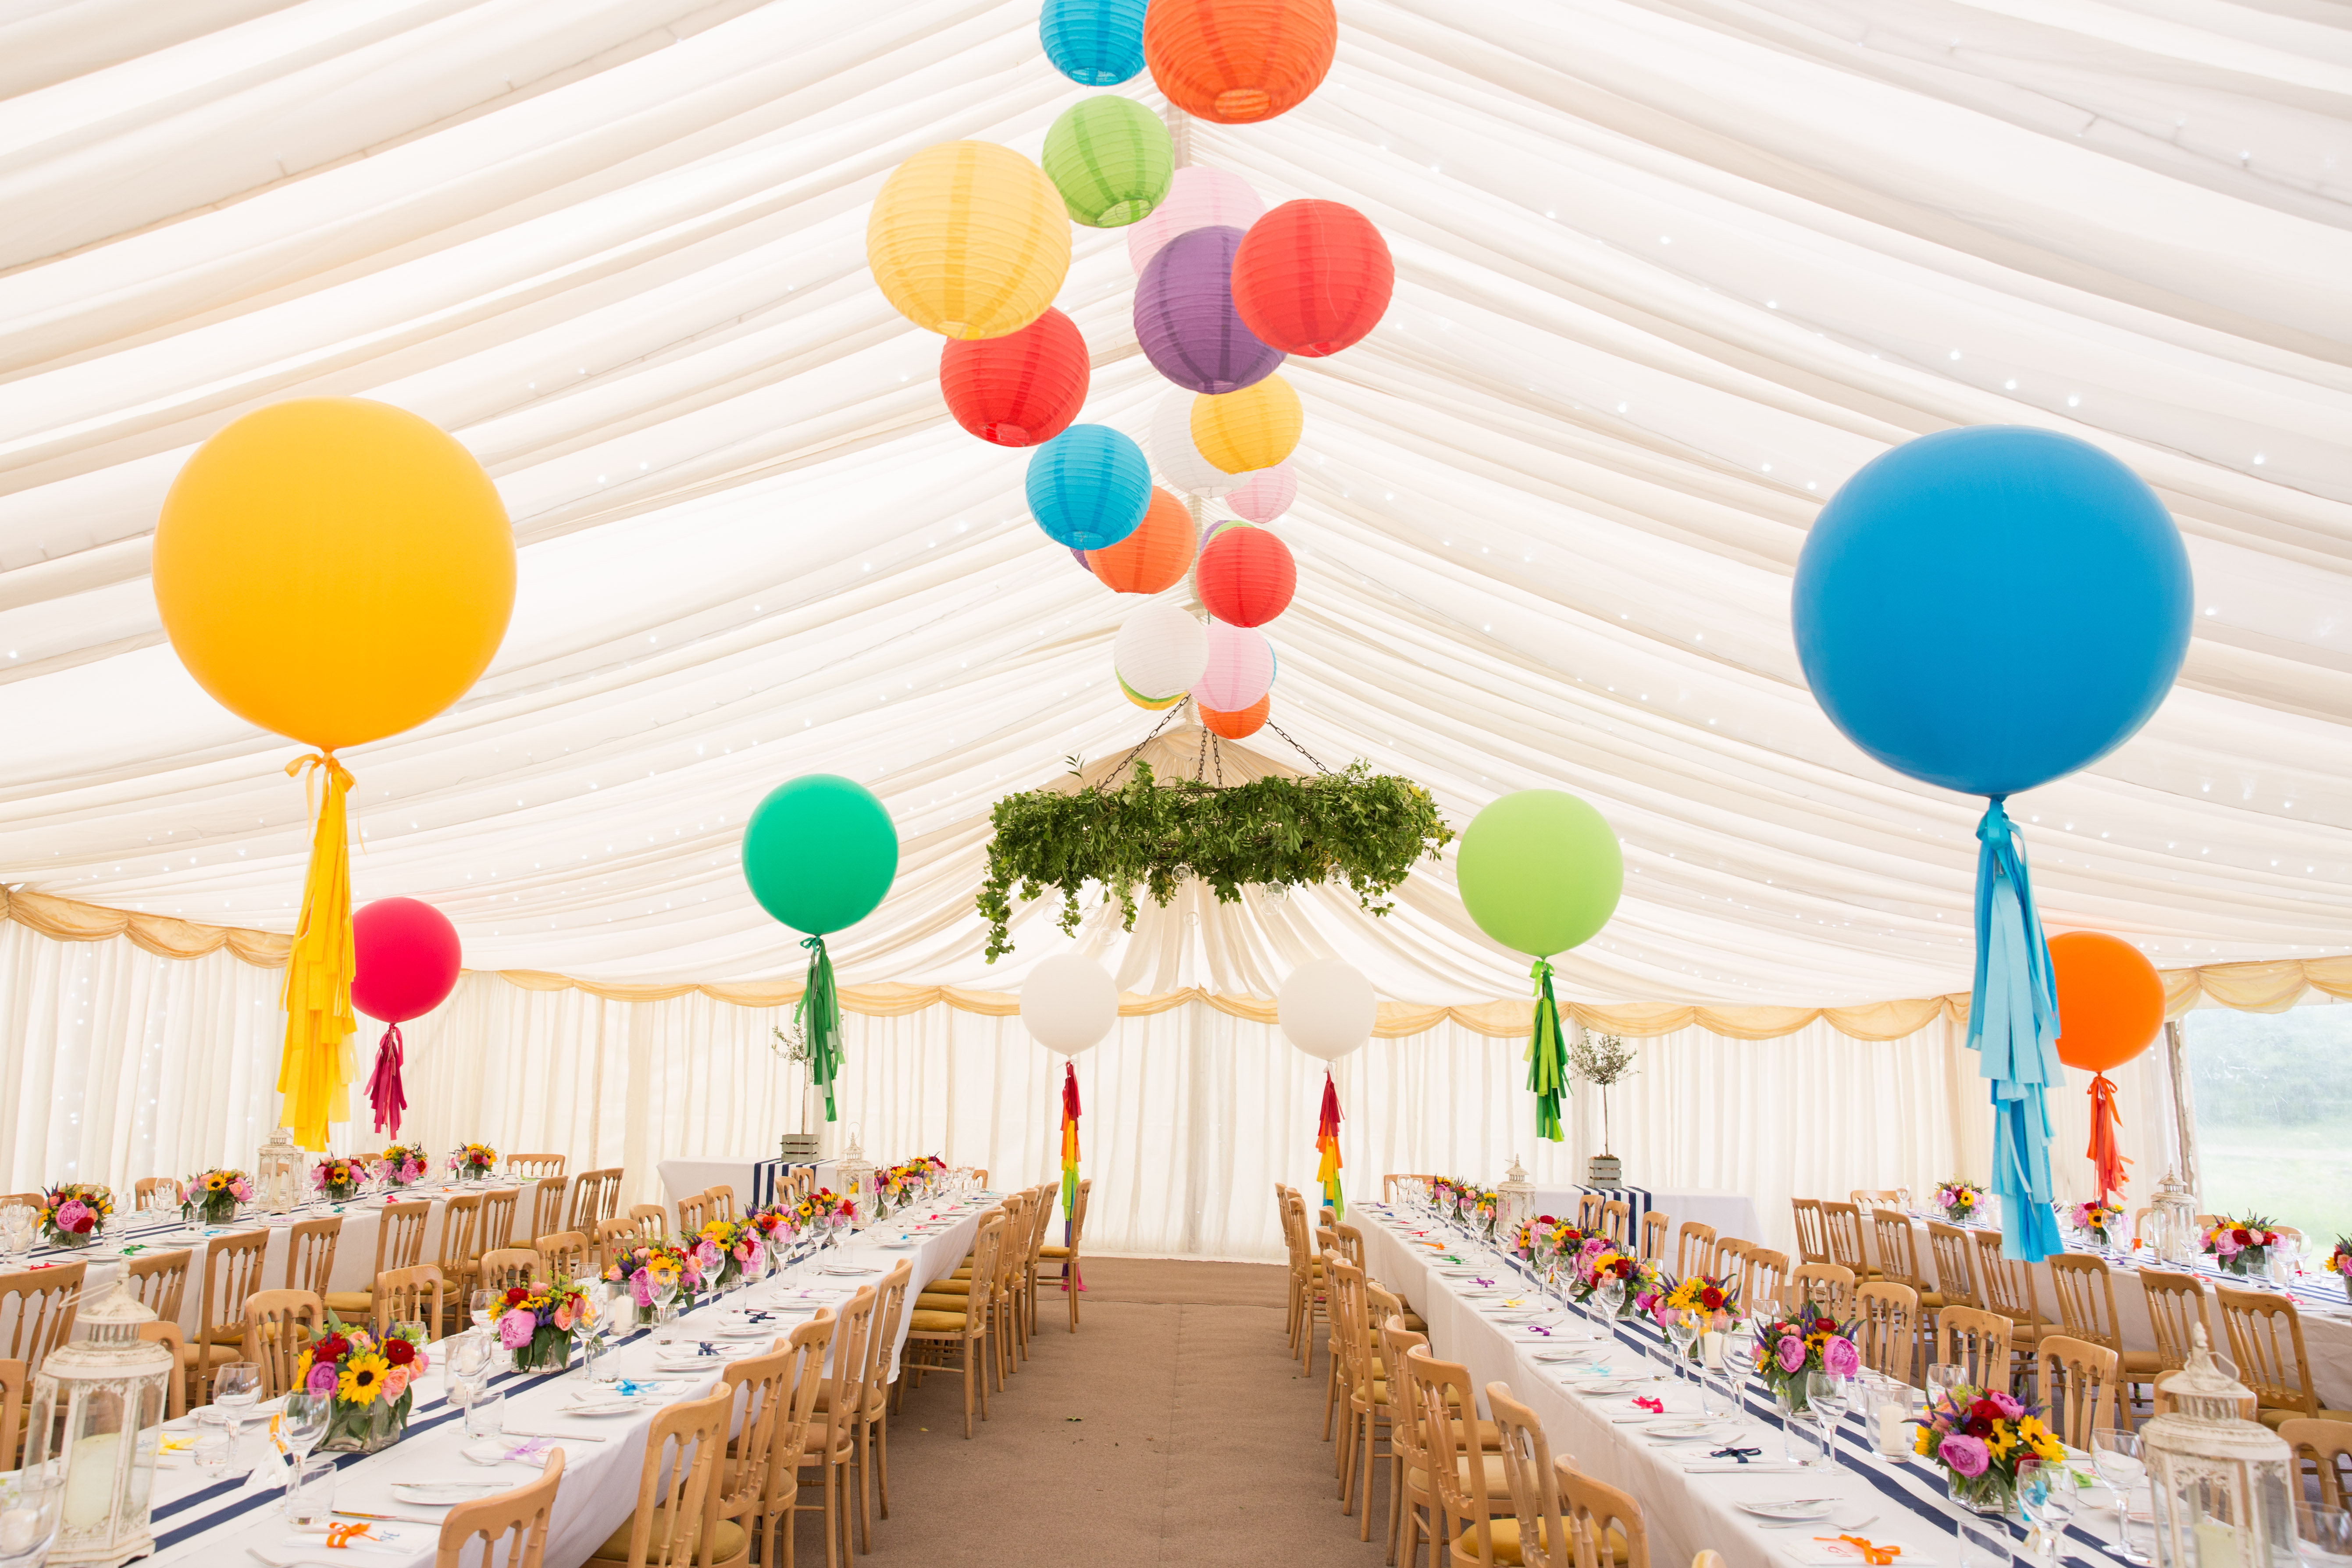 Marquee Wedding Giant Balloons